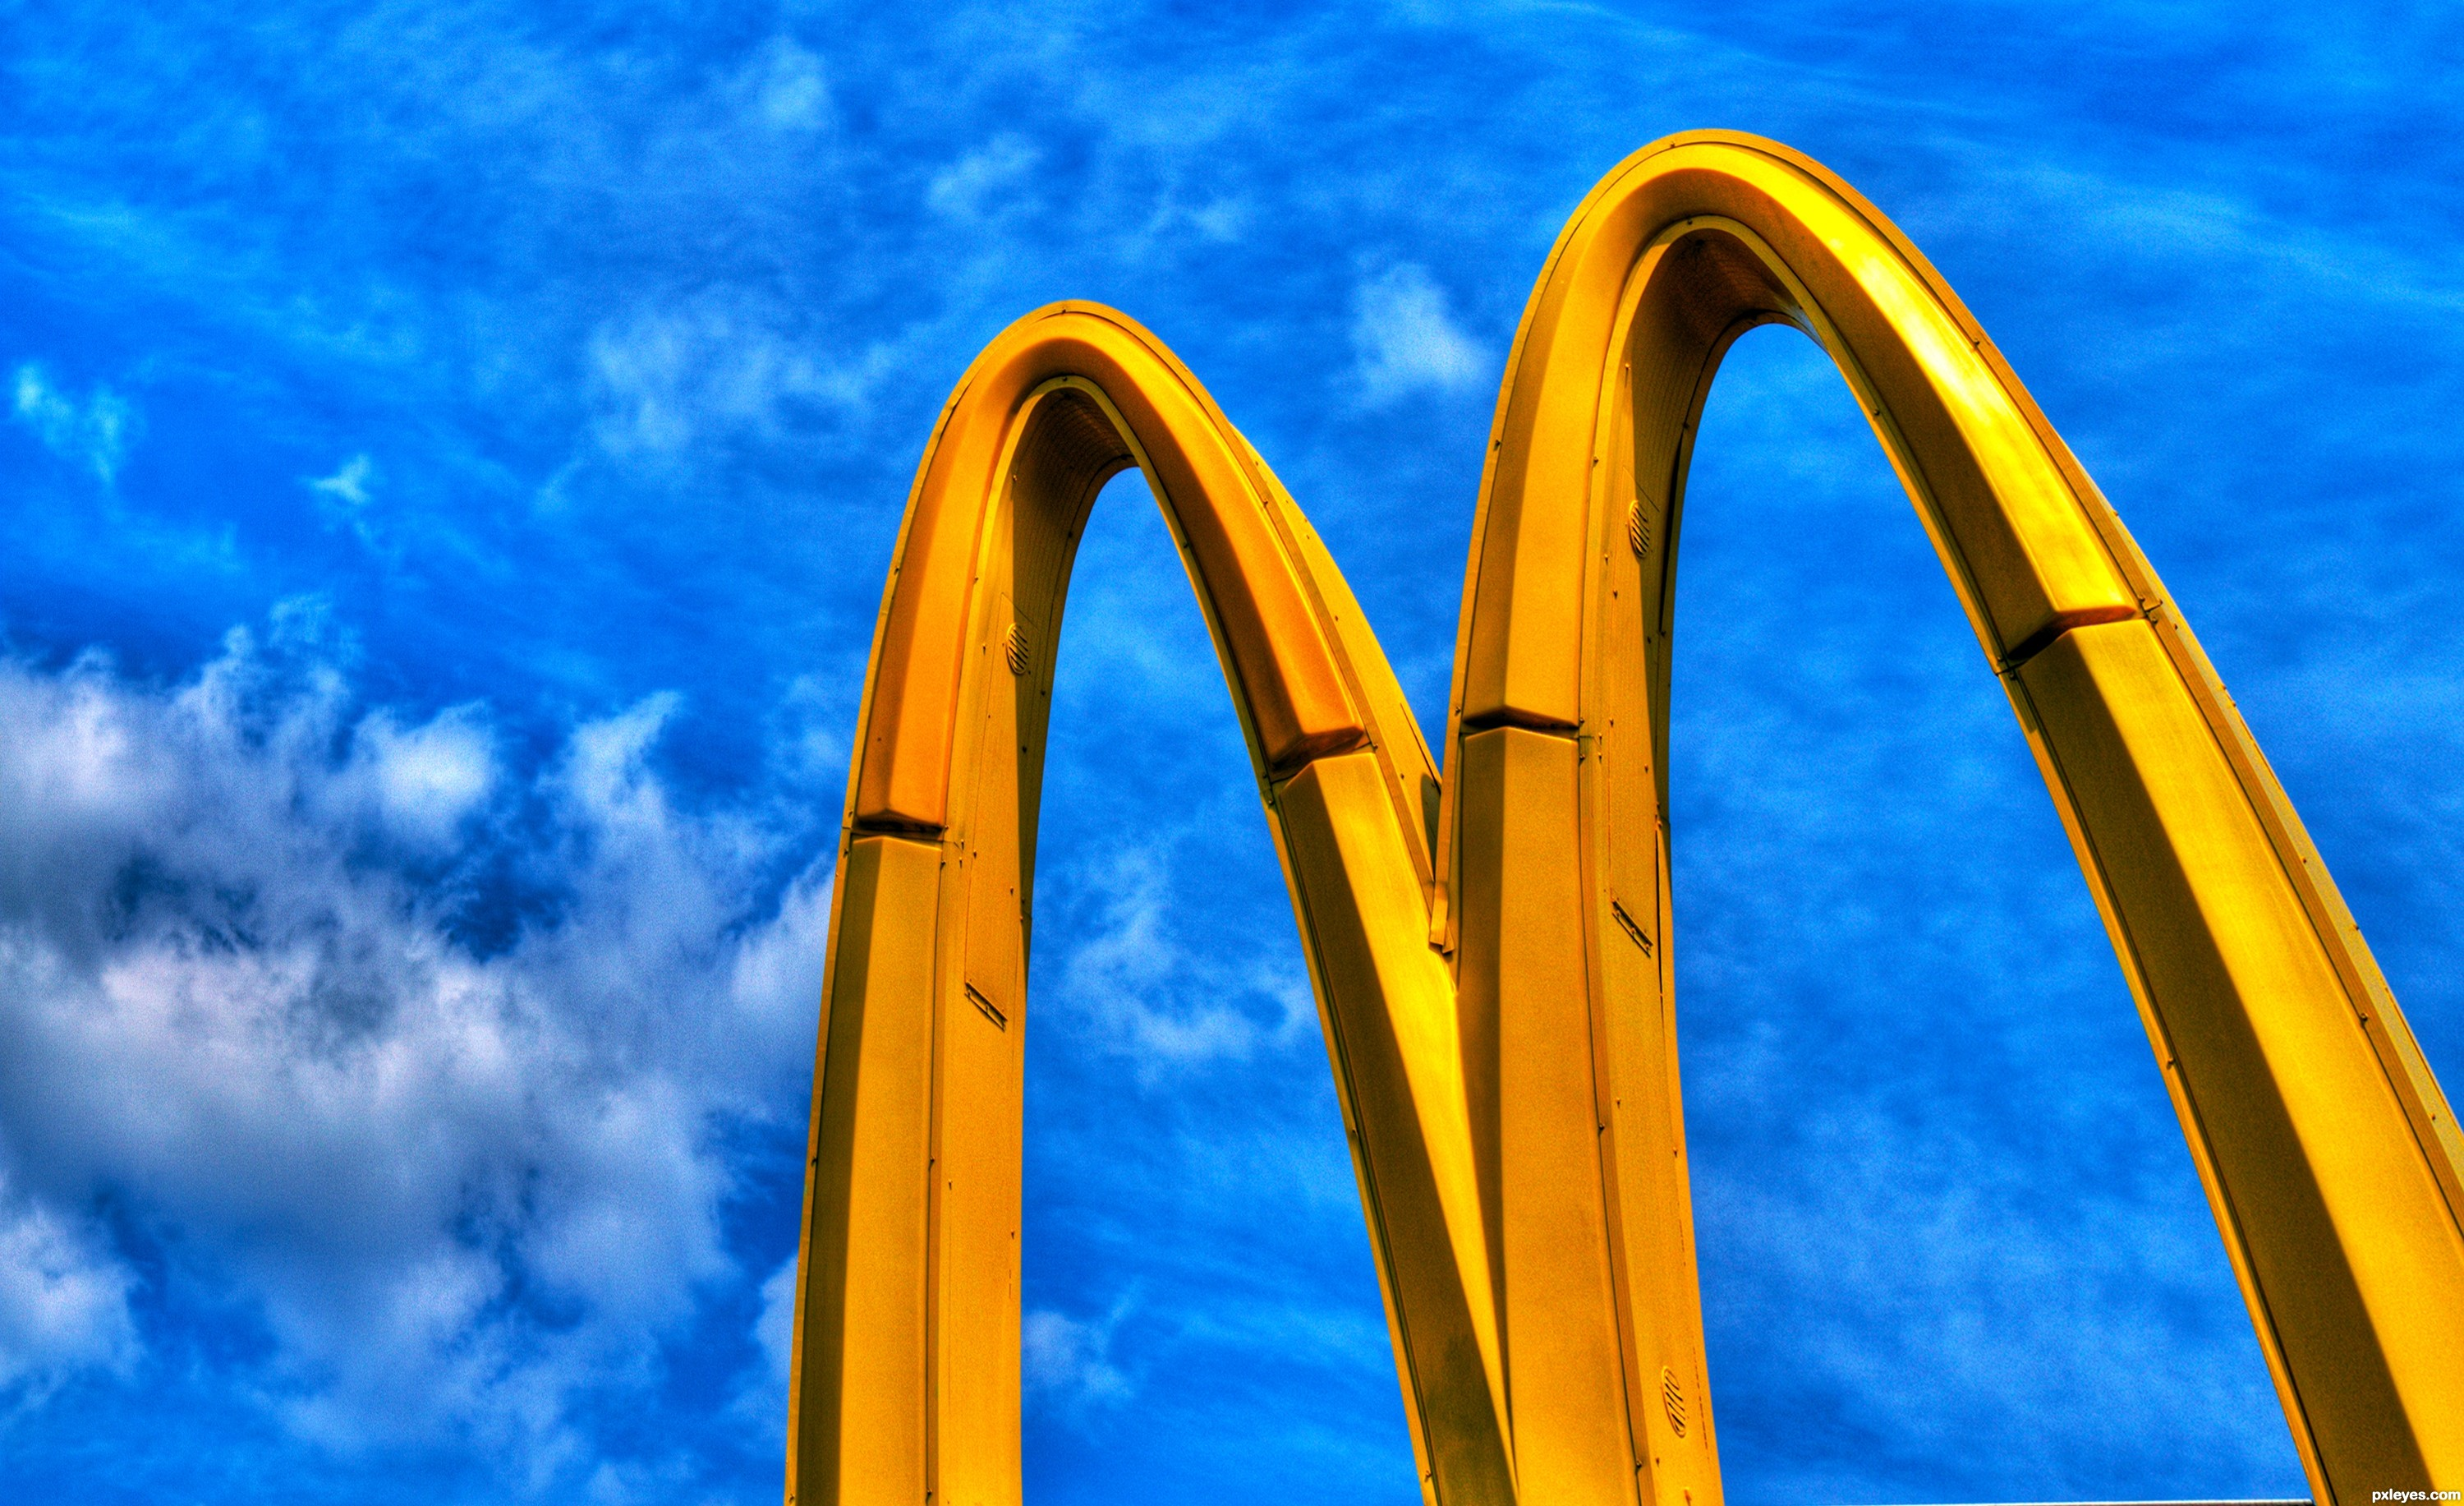 the golden arches Thomas l friedman said in the lexus and the olive tree that no two countries with mcdonald's within their borders have ever been in a war since having a.